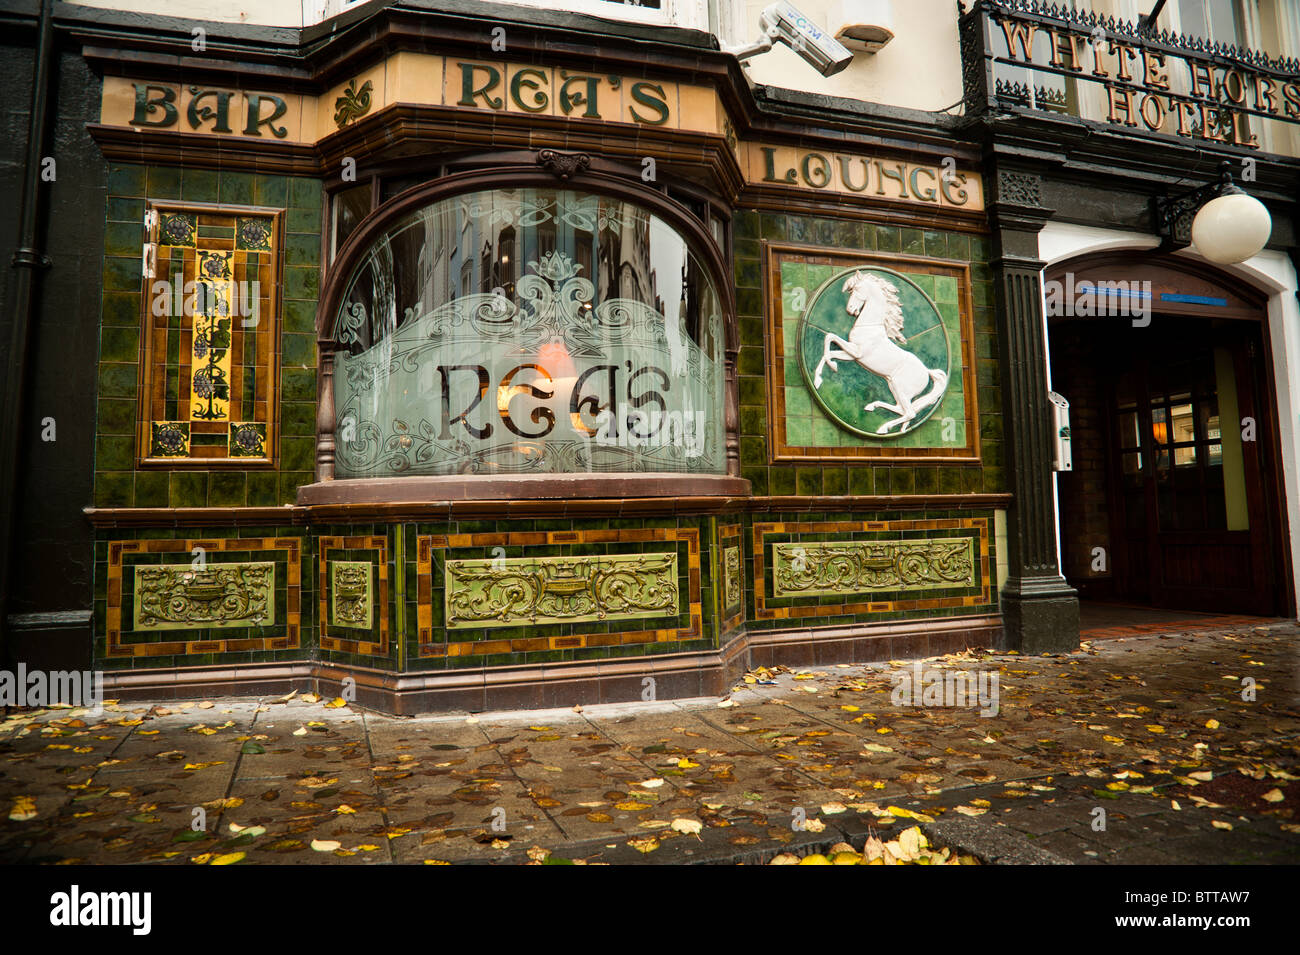 The old Victorian tiled frontage and engraved window of Rea's Bar lounge Aberystwyth Wales UK - Stock Image